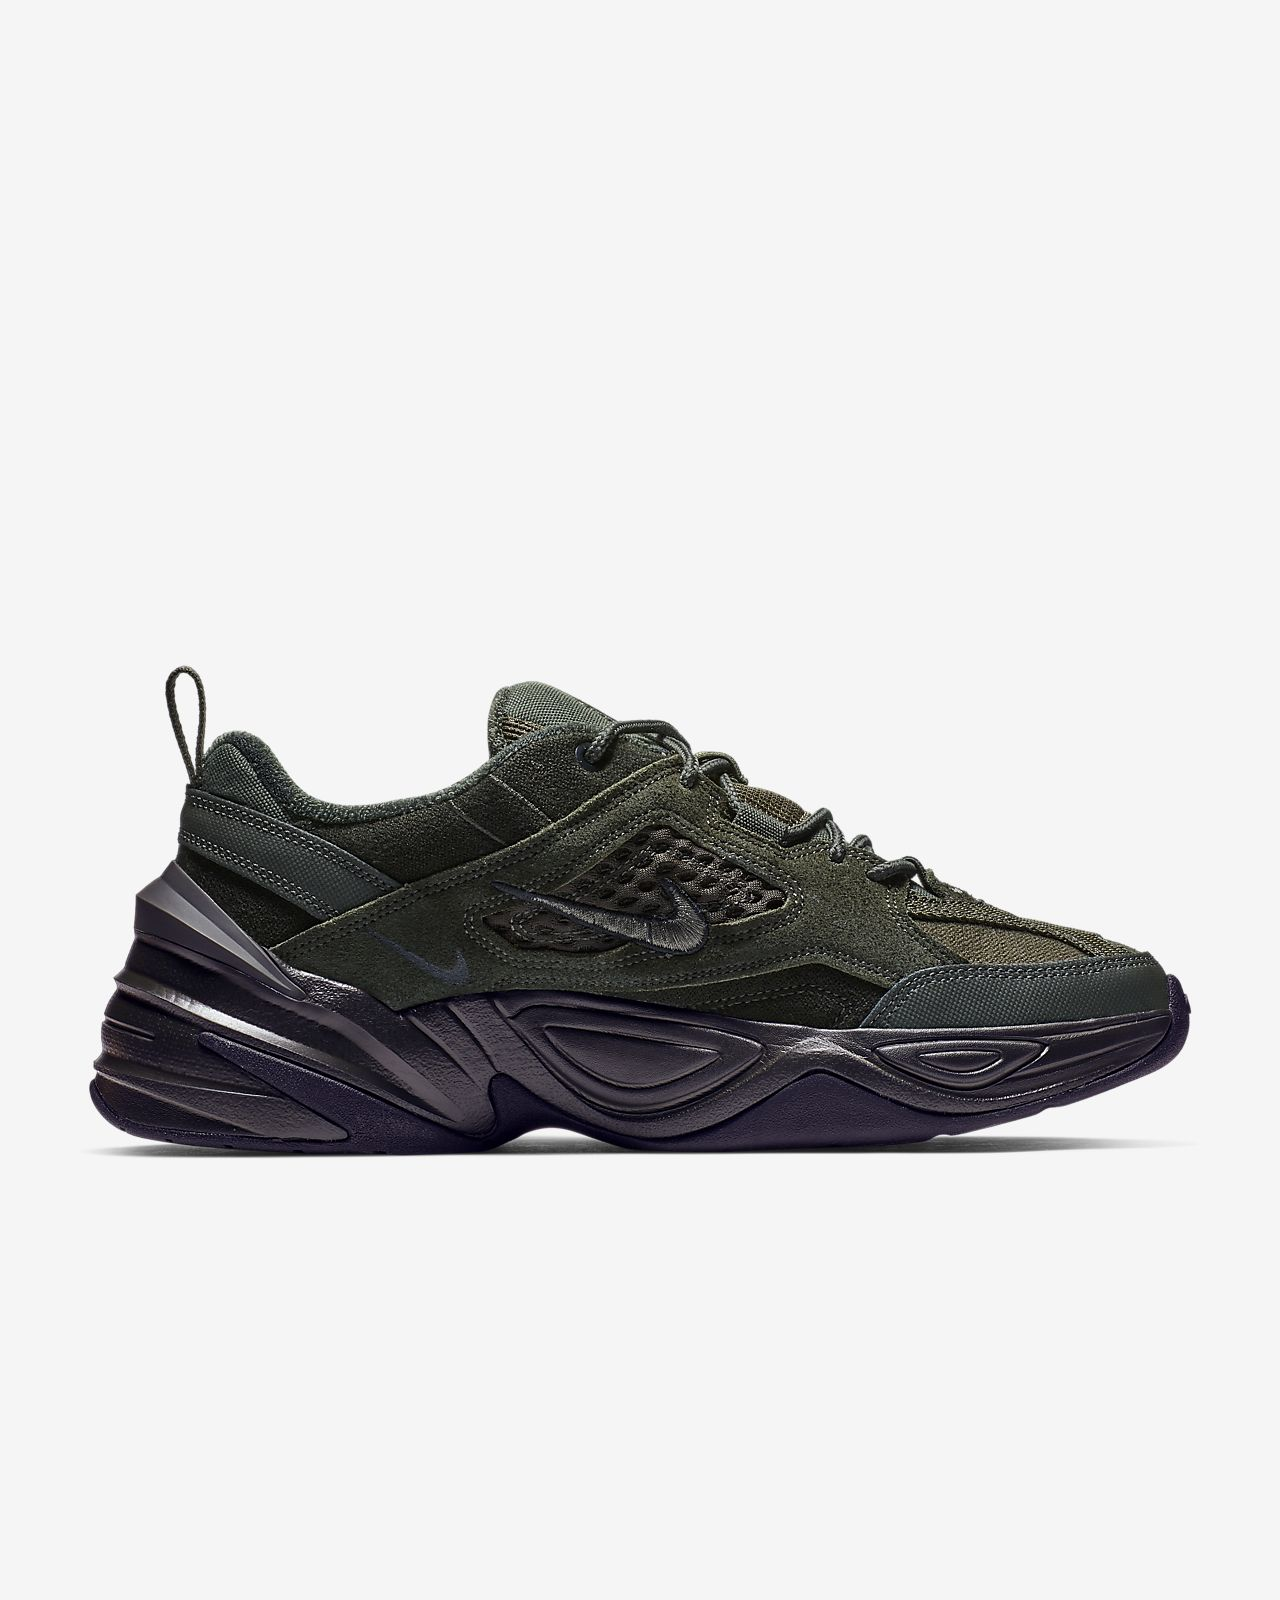 new style be557 3162d ... Chaussure Nike M2K Tekno SP pour Homme